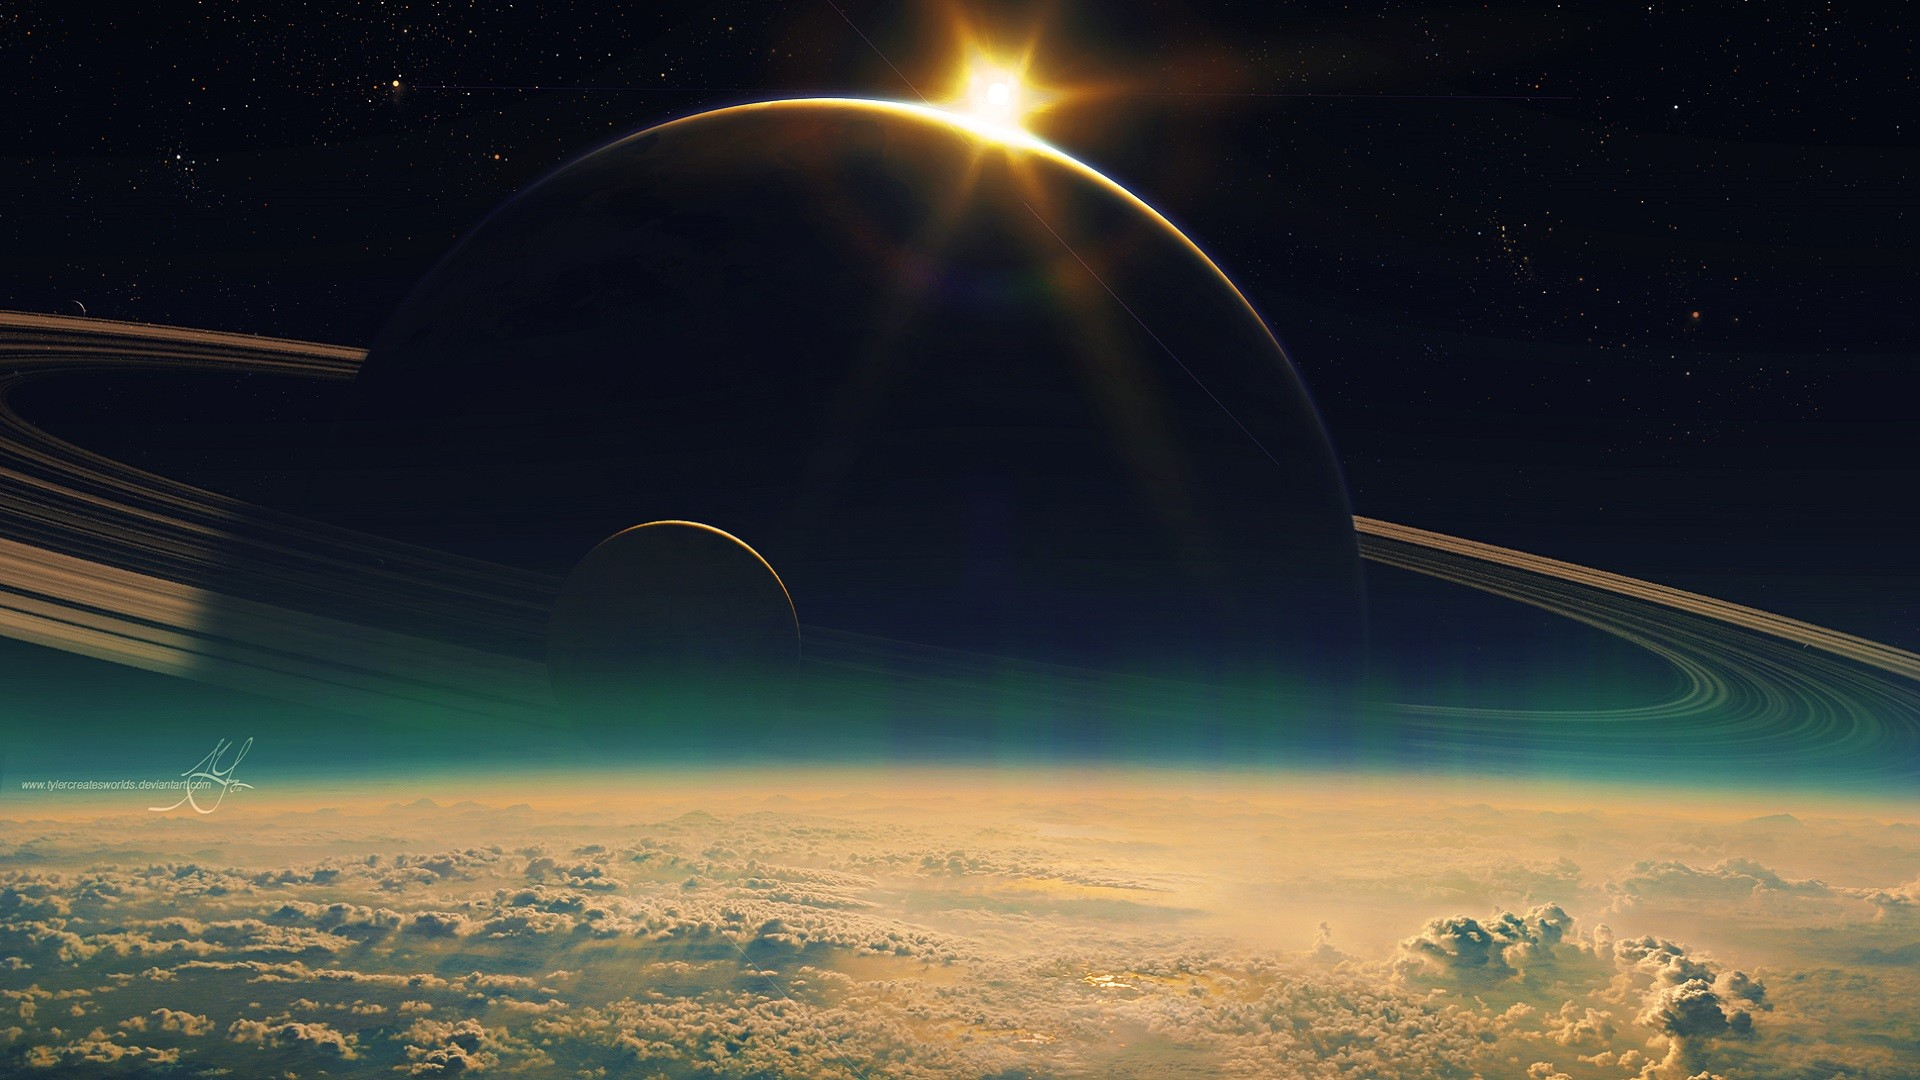 Space Hd Wallpaper 1080p Iphone (page 2) – Pics about space